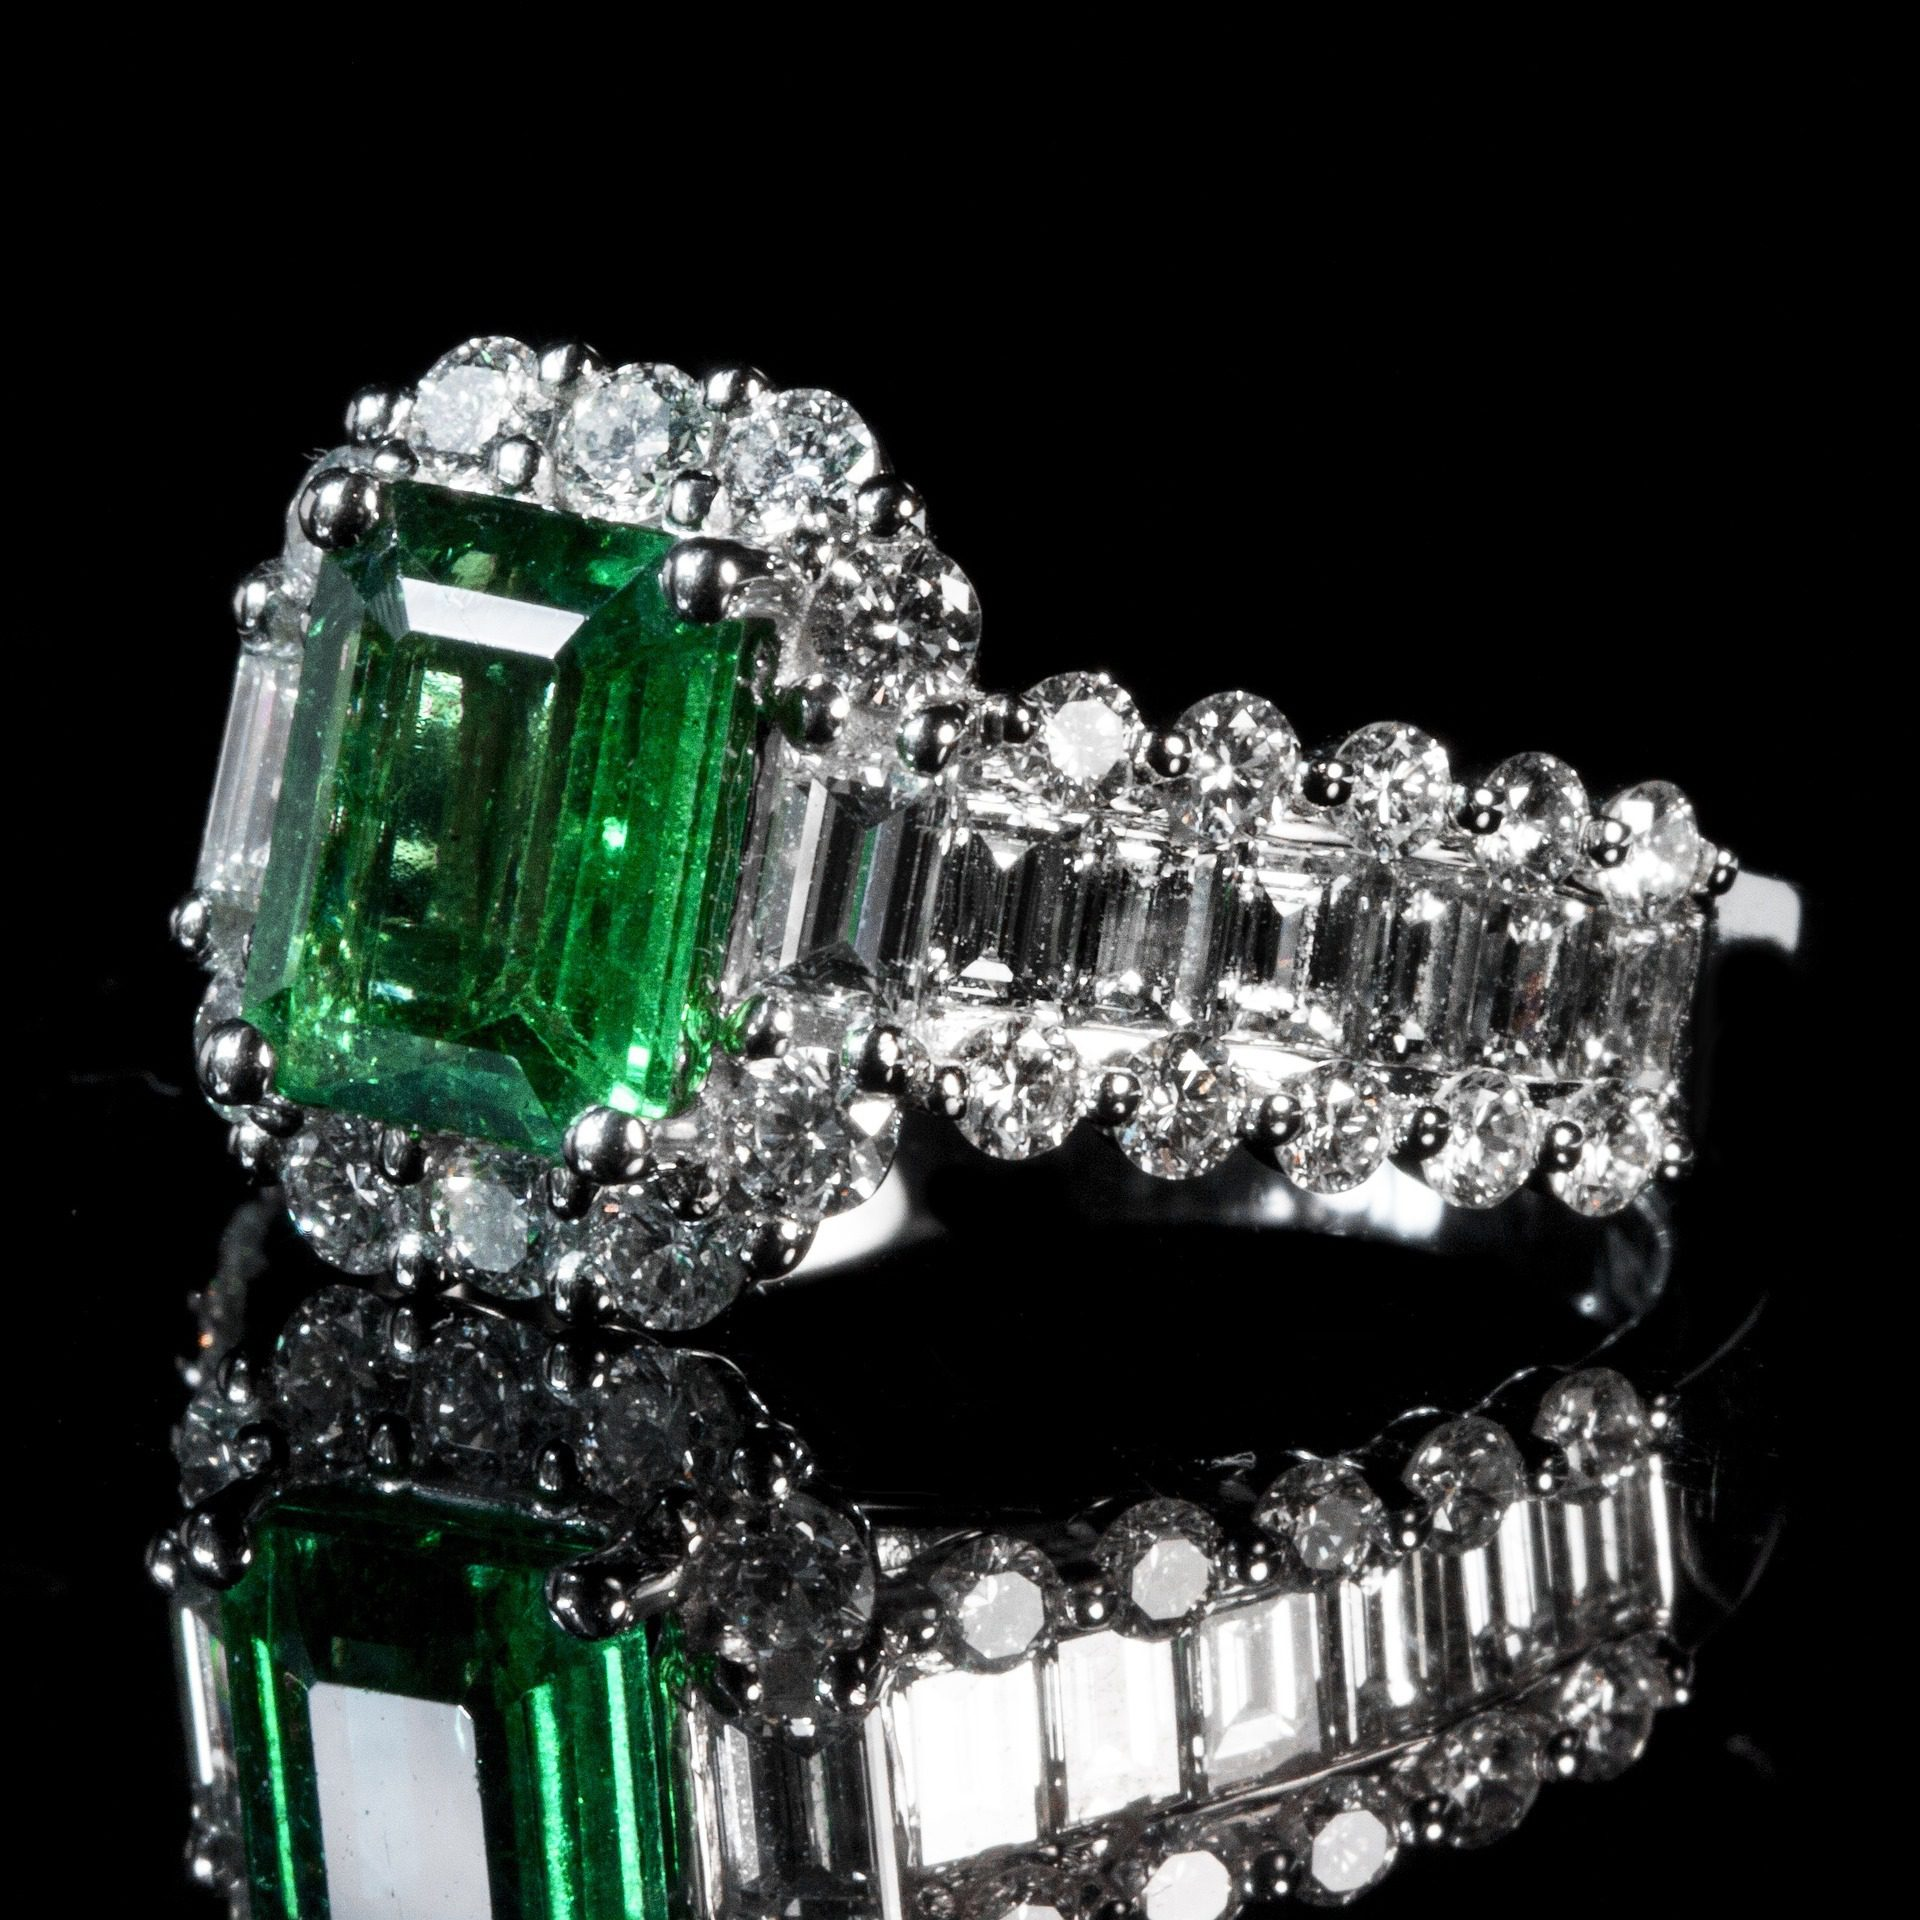 Emerald Engagement Rings: Everything You Need To Know